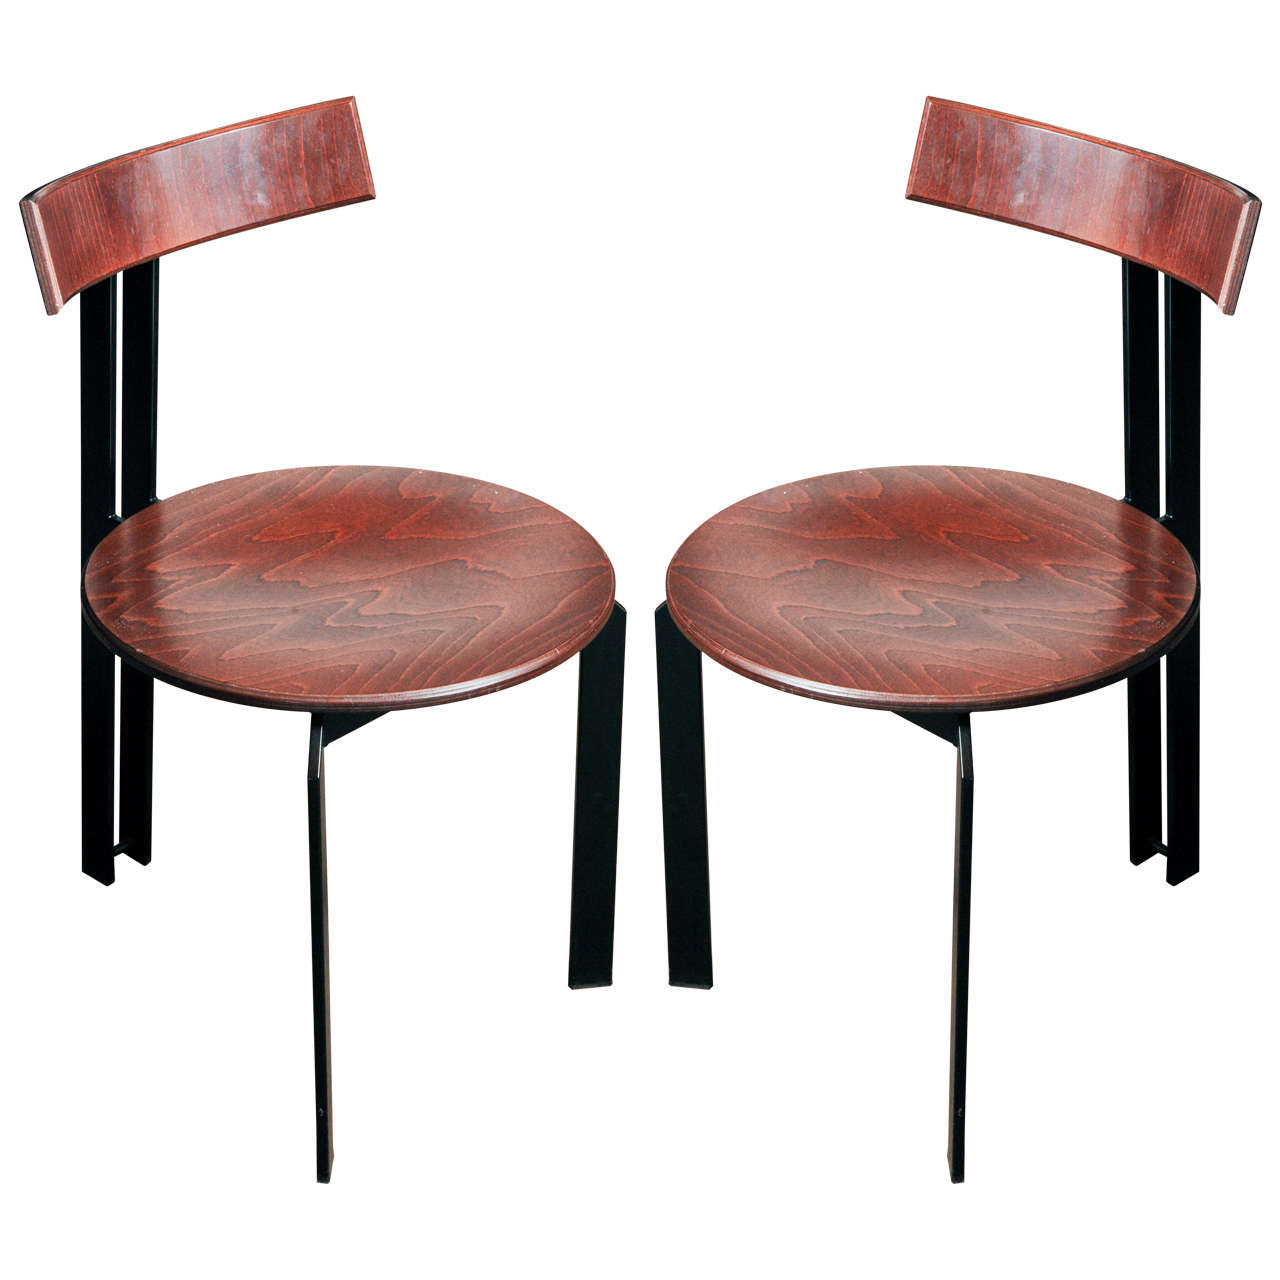 4x Industrial Look Dining Chairs At 1stdibs